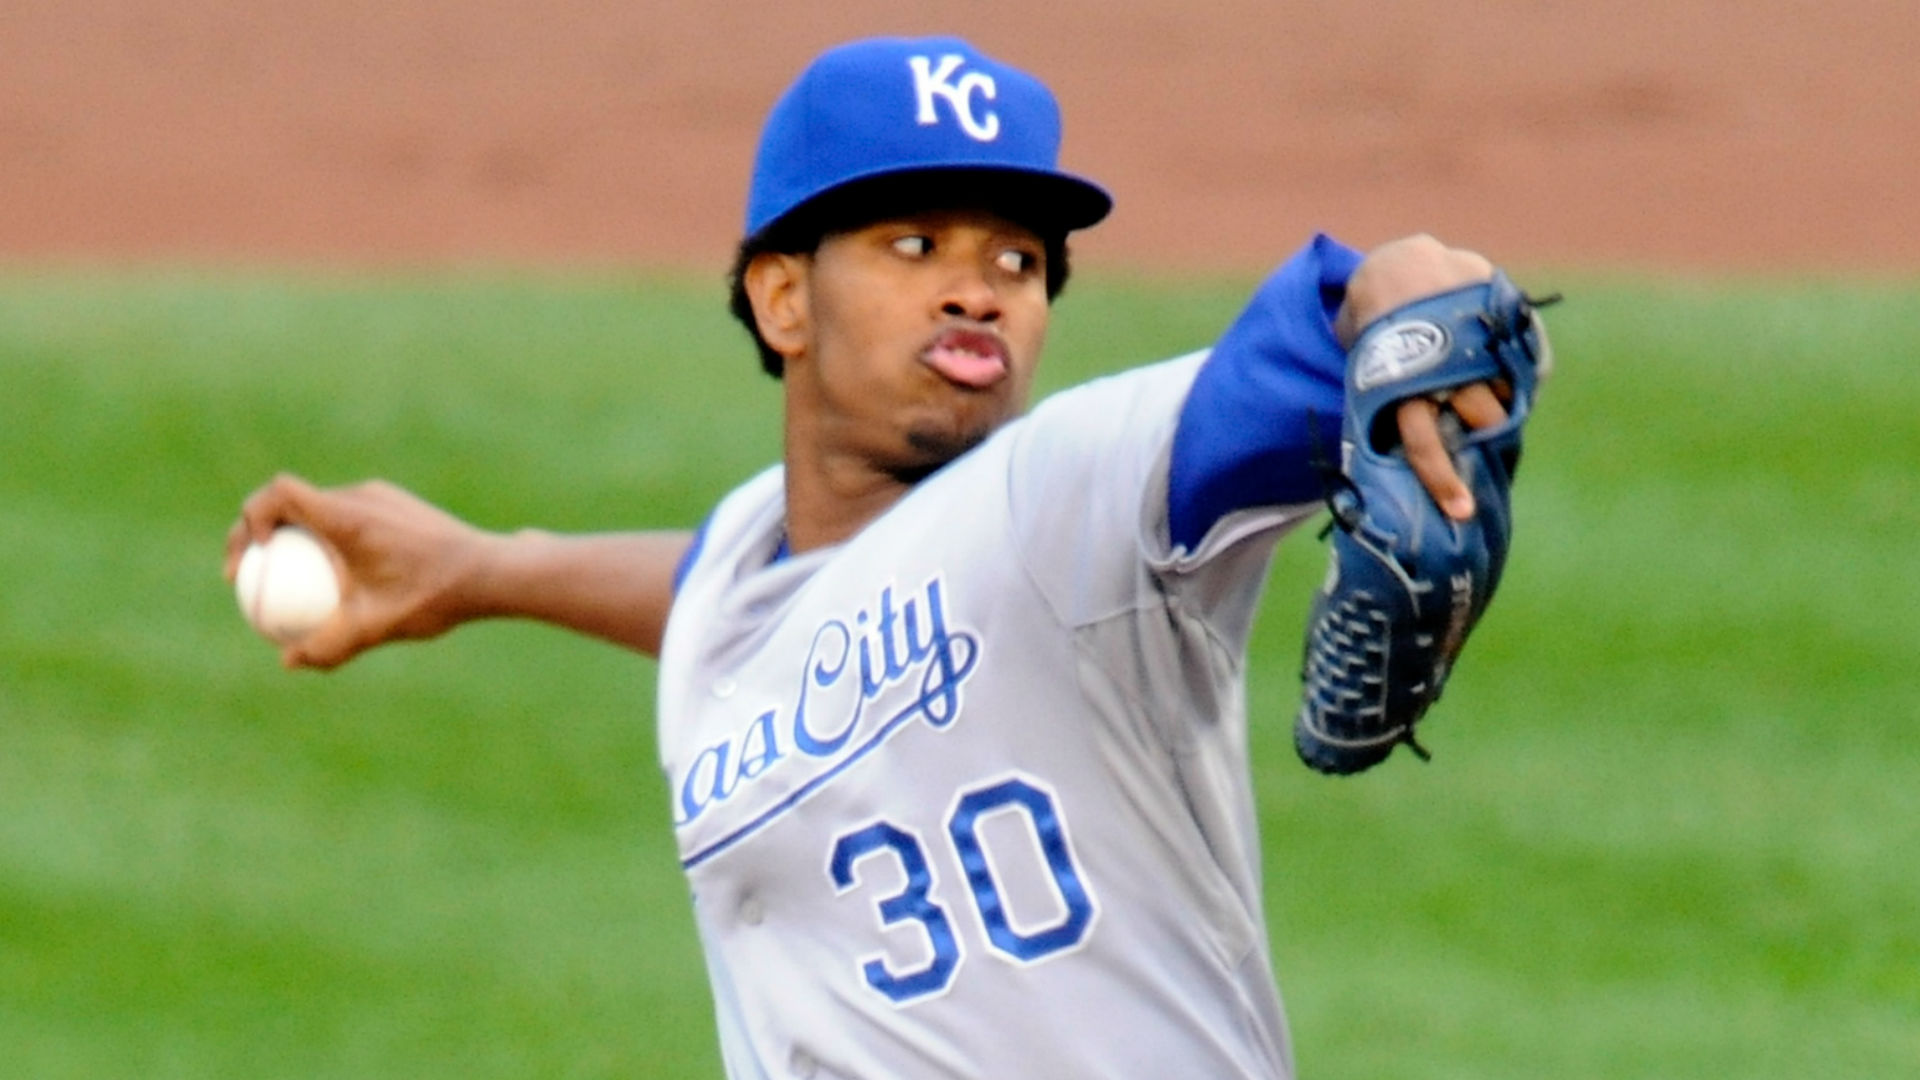 World Series Game 2 odds and pick - Royals, Ventura favored to even series